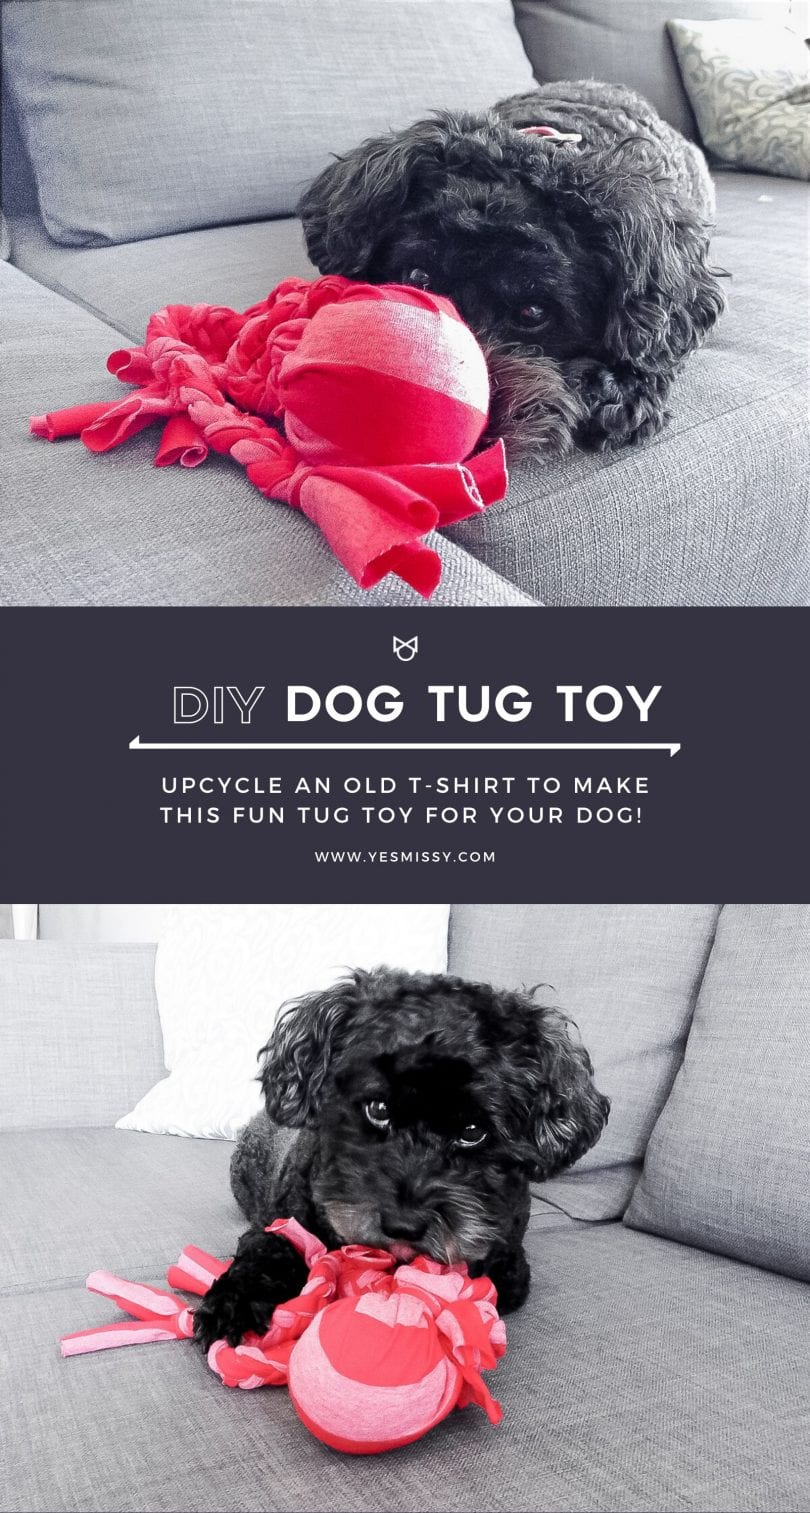 Make your own DIY dog toy with a tennis ball and an old t shirt!